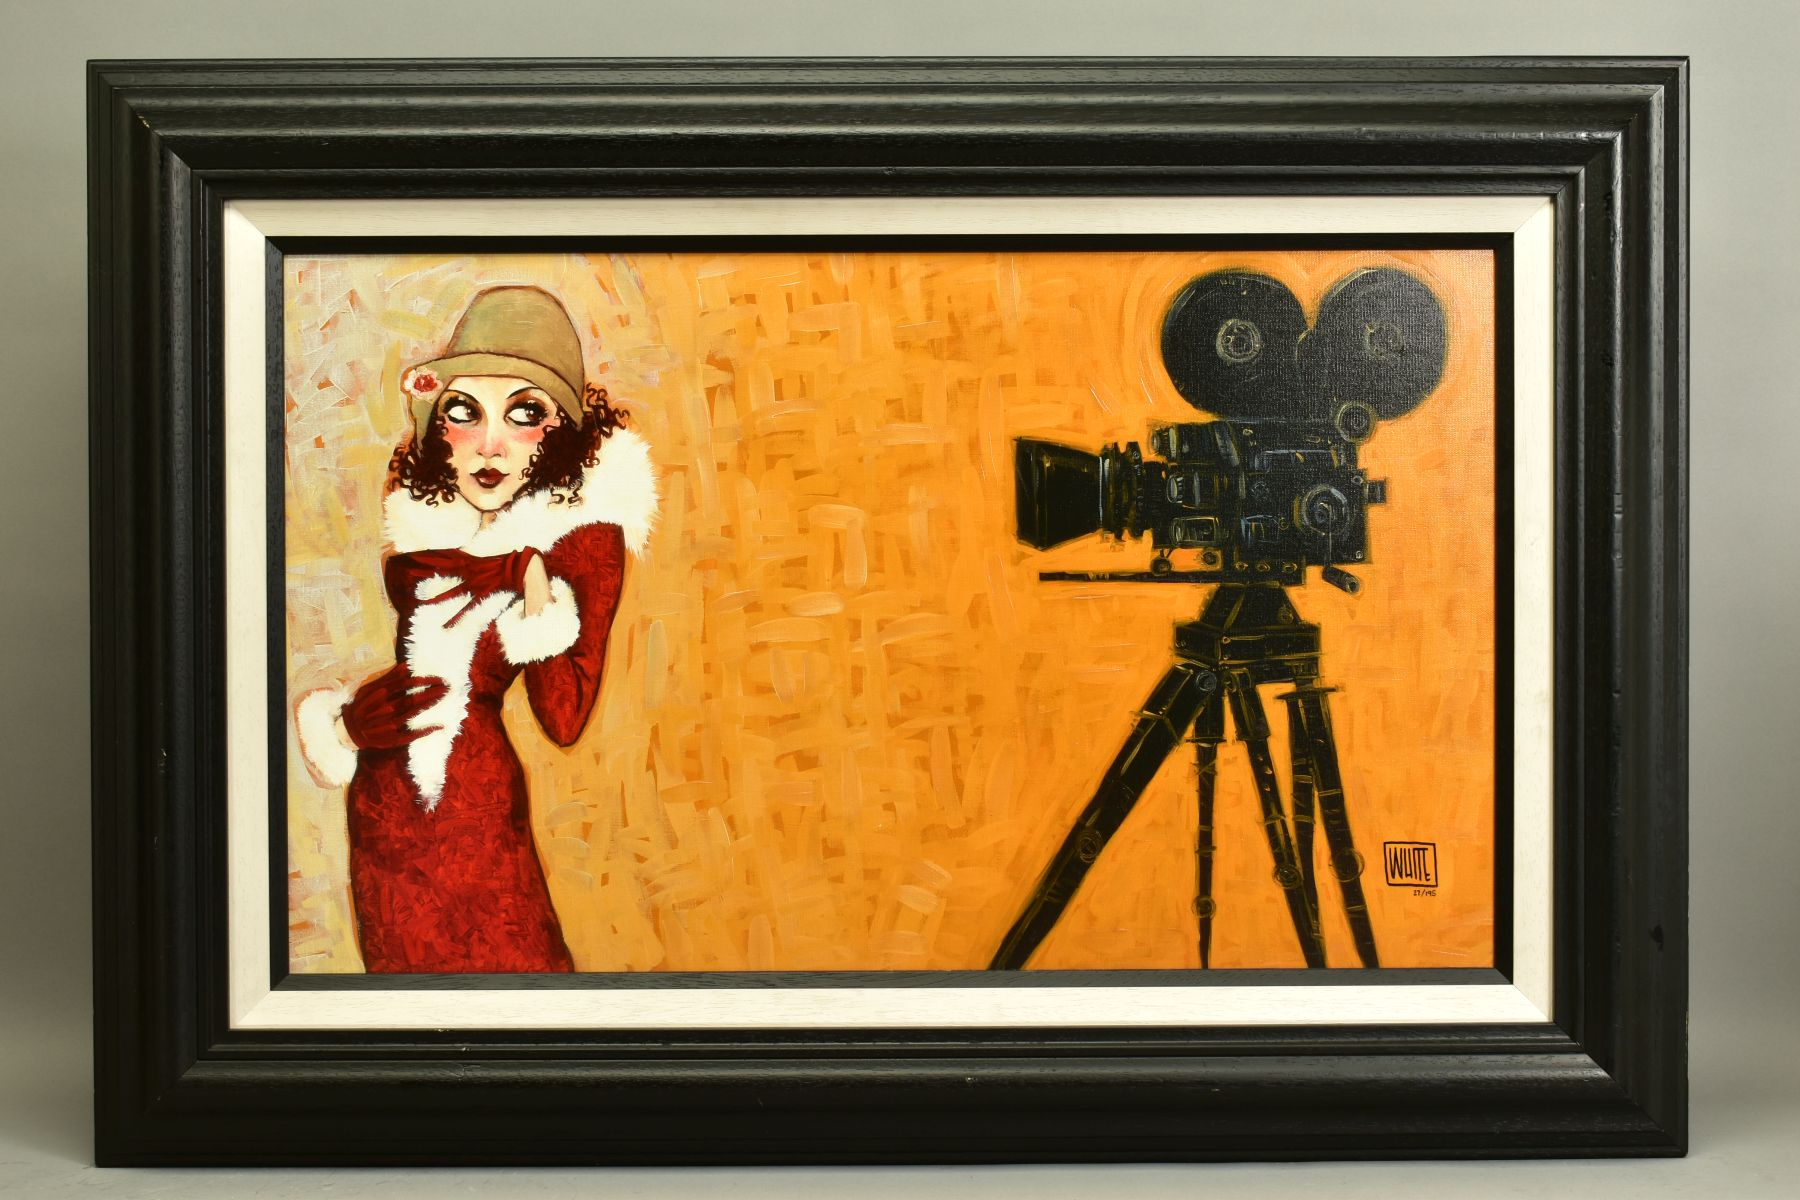 TODD WHITE (AMERICAN 1969), 'Her First Screen Test', a Limited Edition print of a female figure,